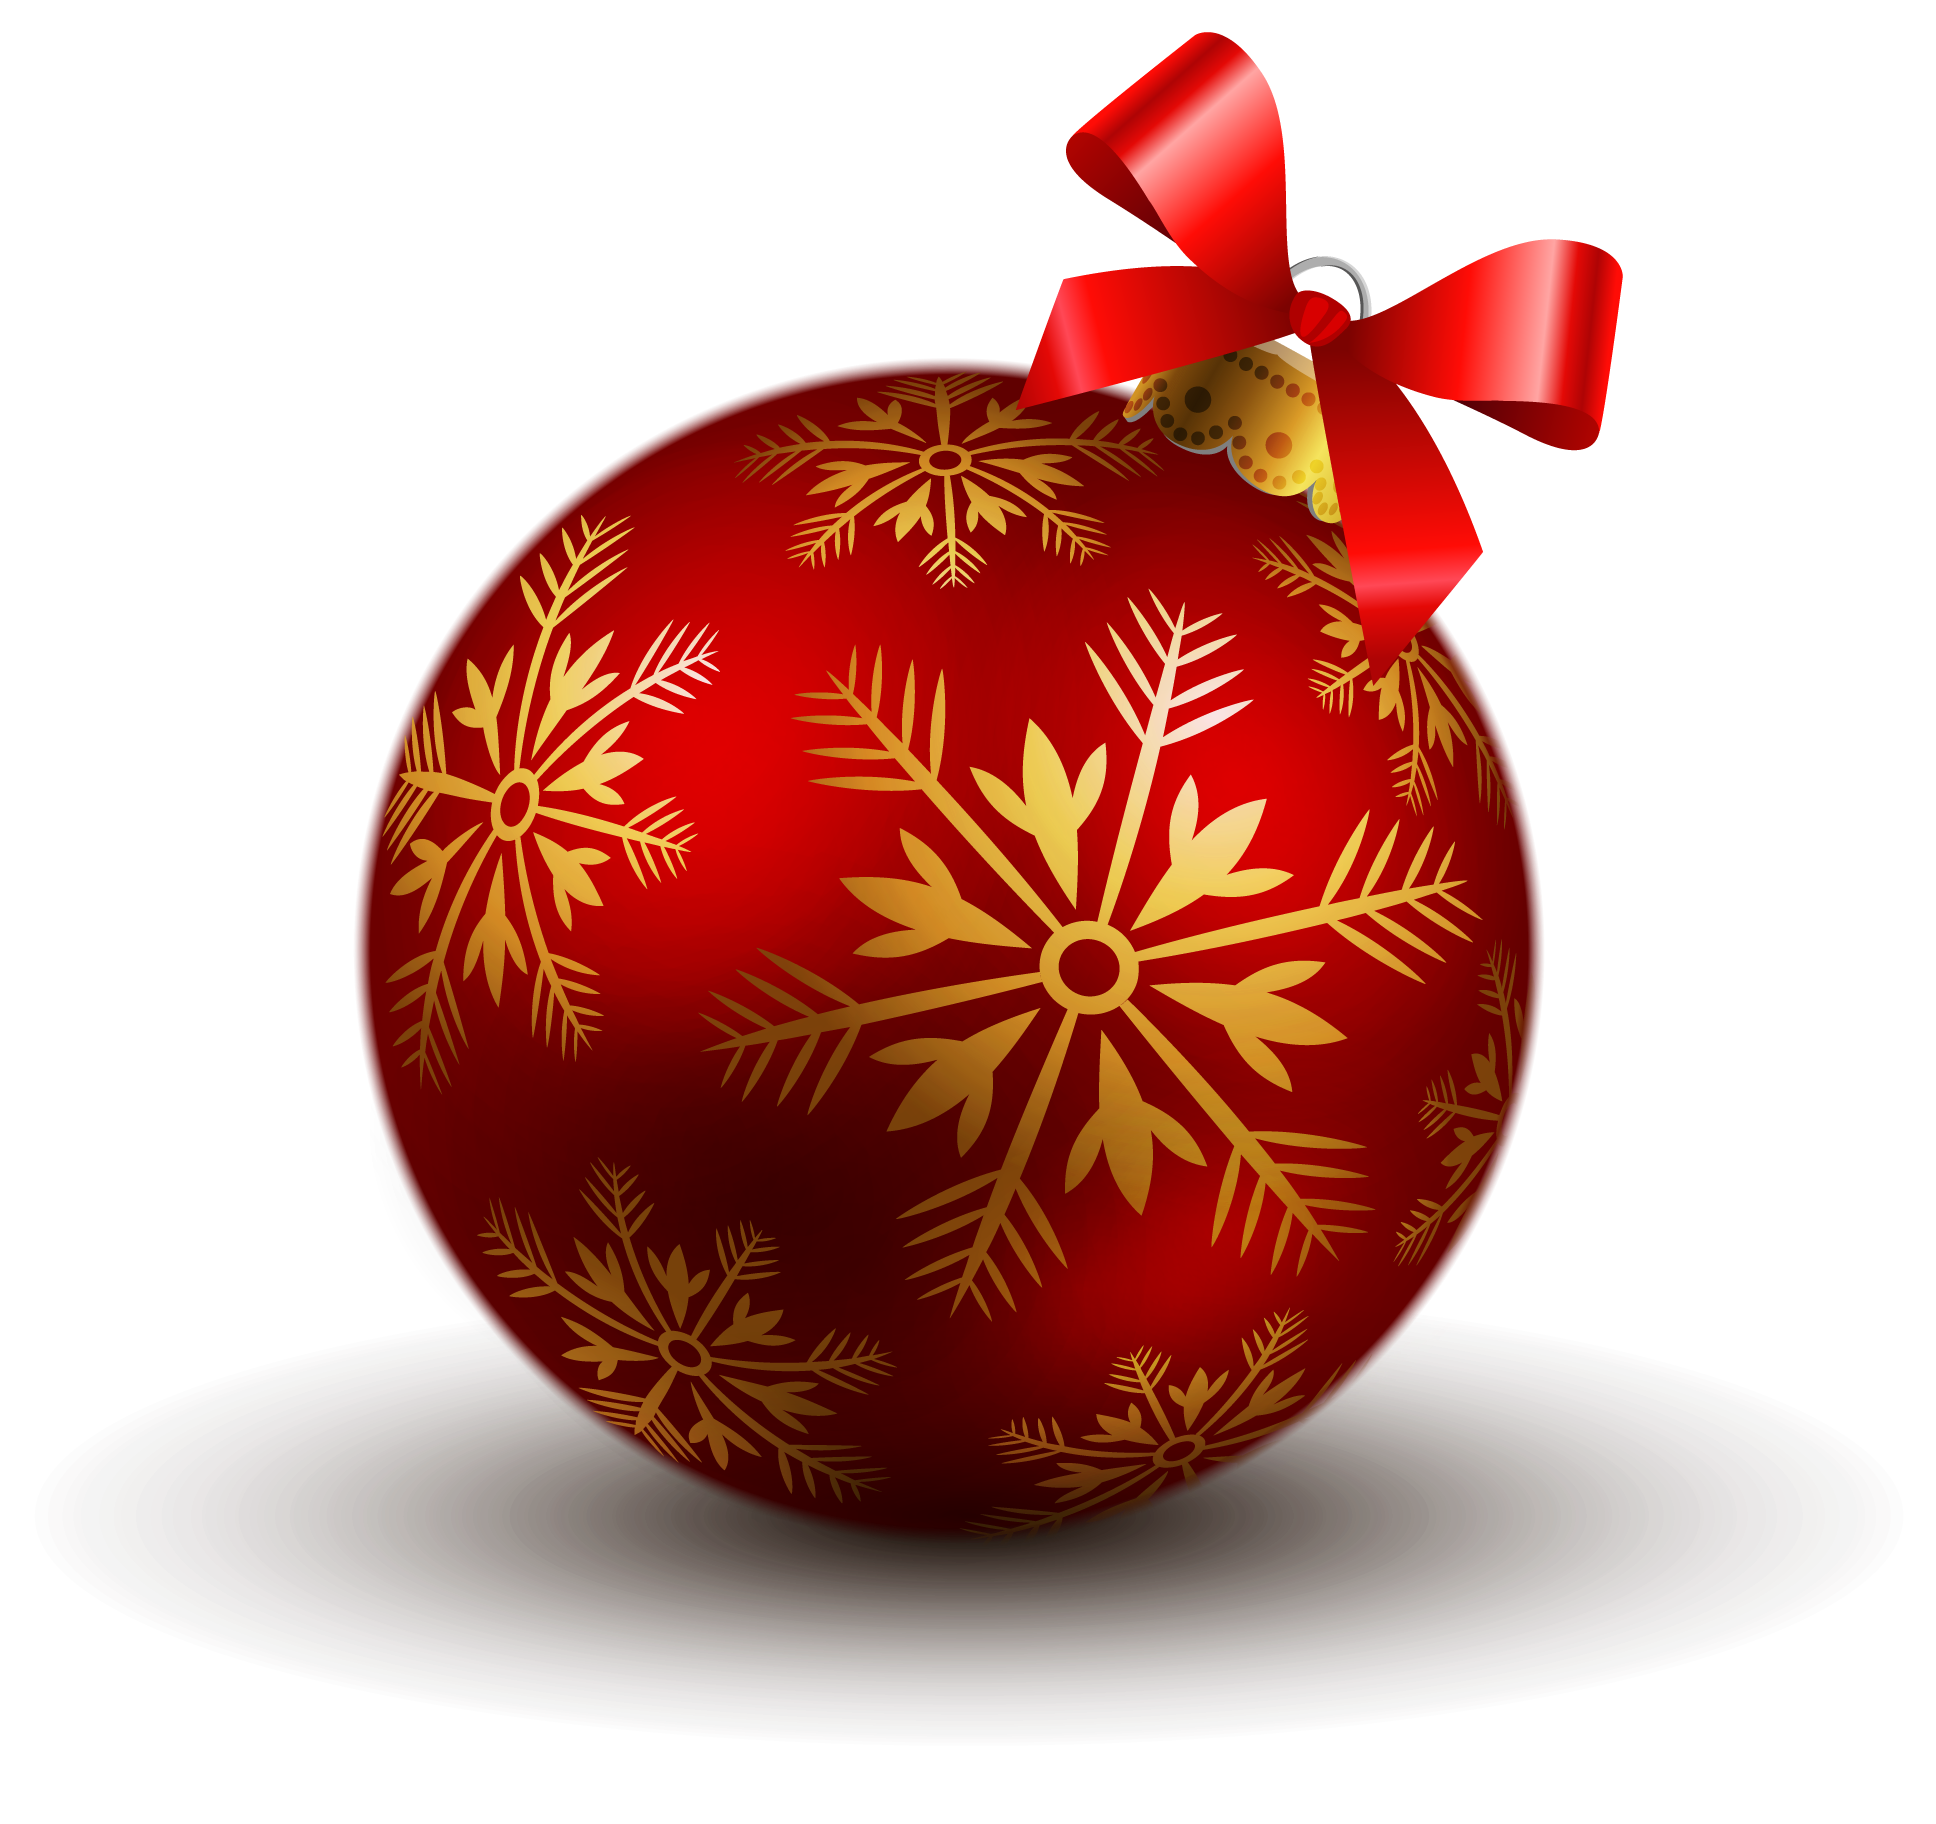 Christmas Bulb Png, png collections at sccpre.cat.